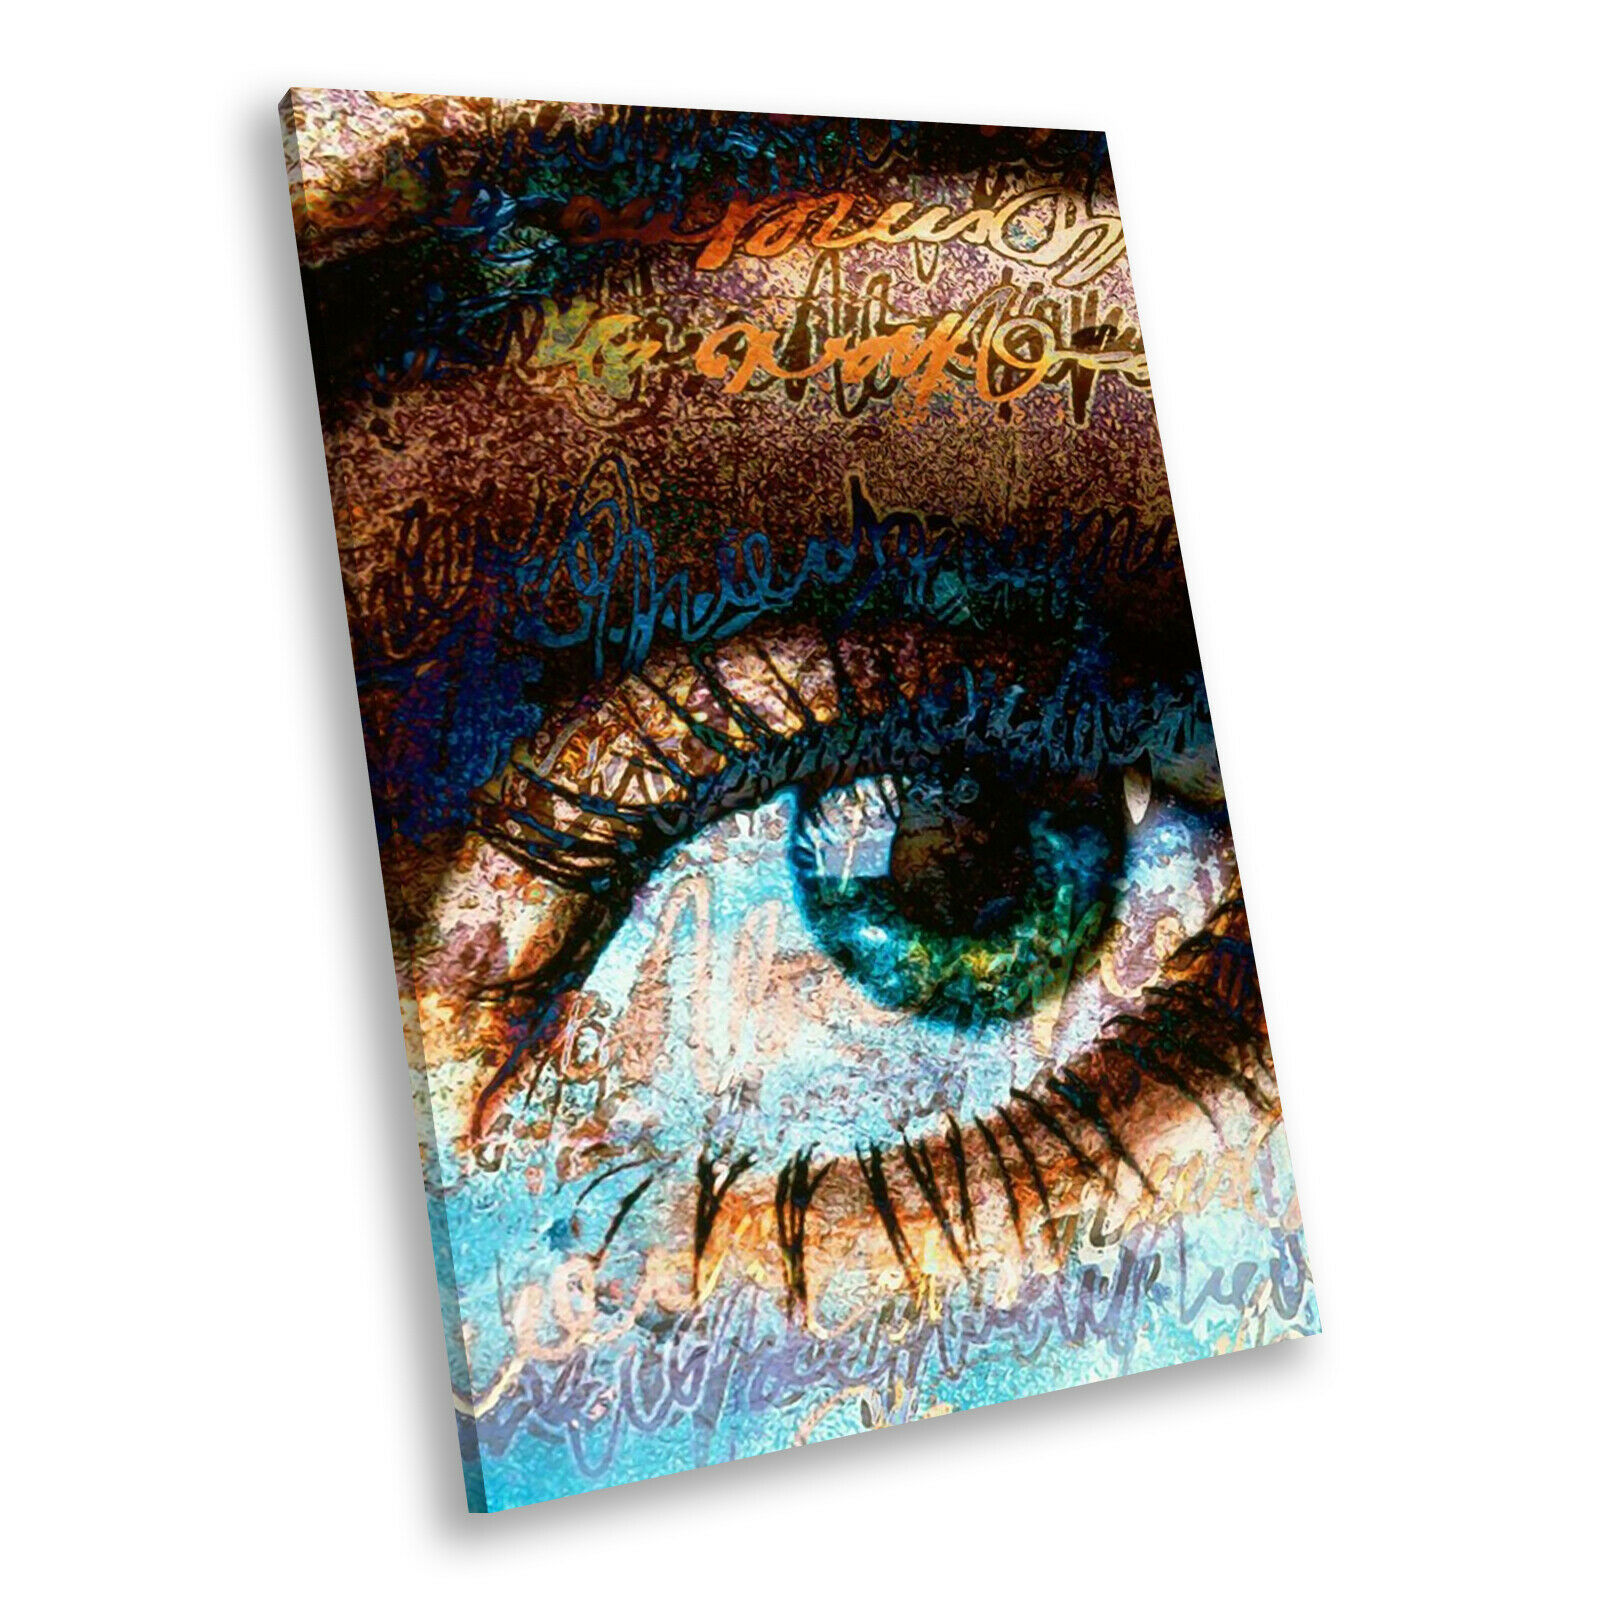 Blau braun Eye Rustic Portrait Abstract Canvas Wand Kunst Large Bild Druckens